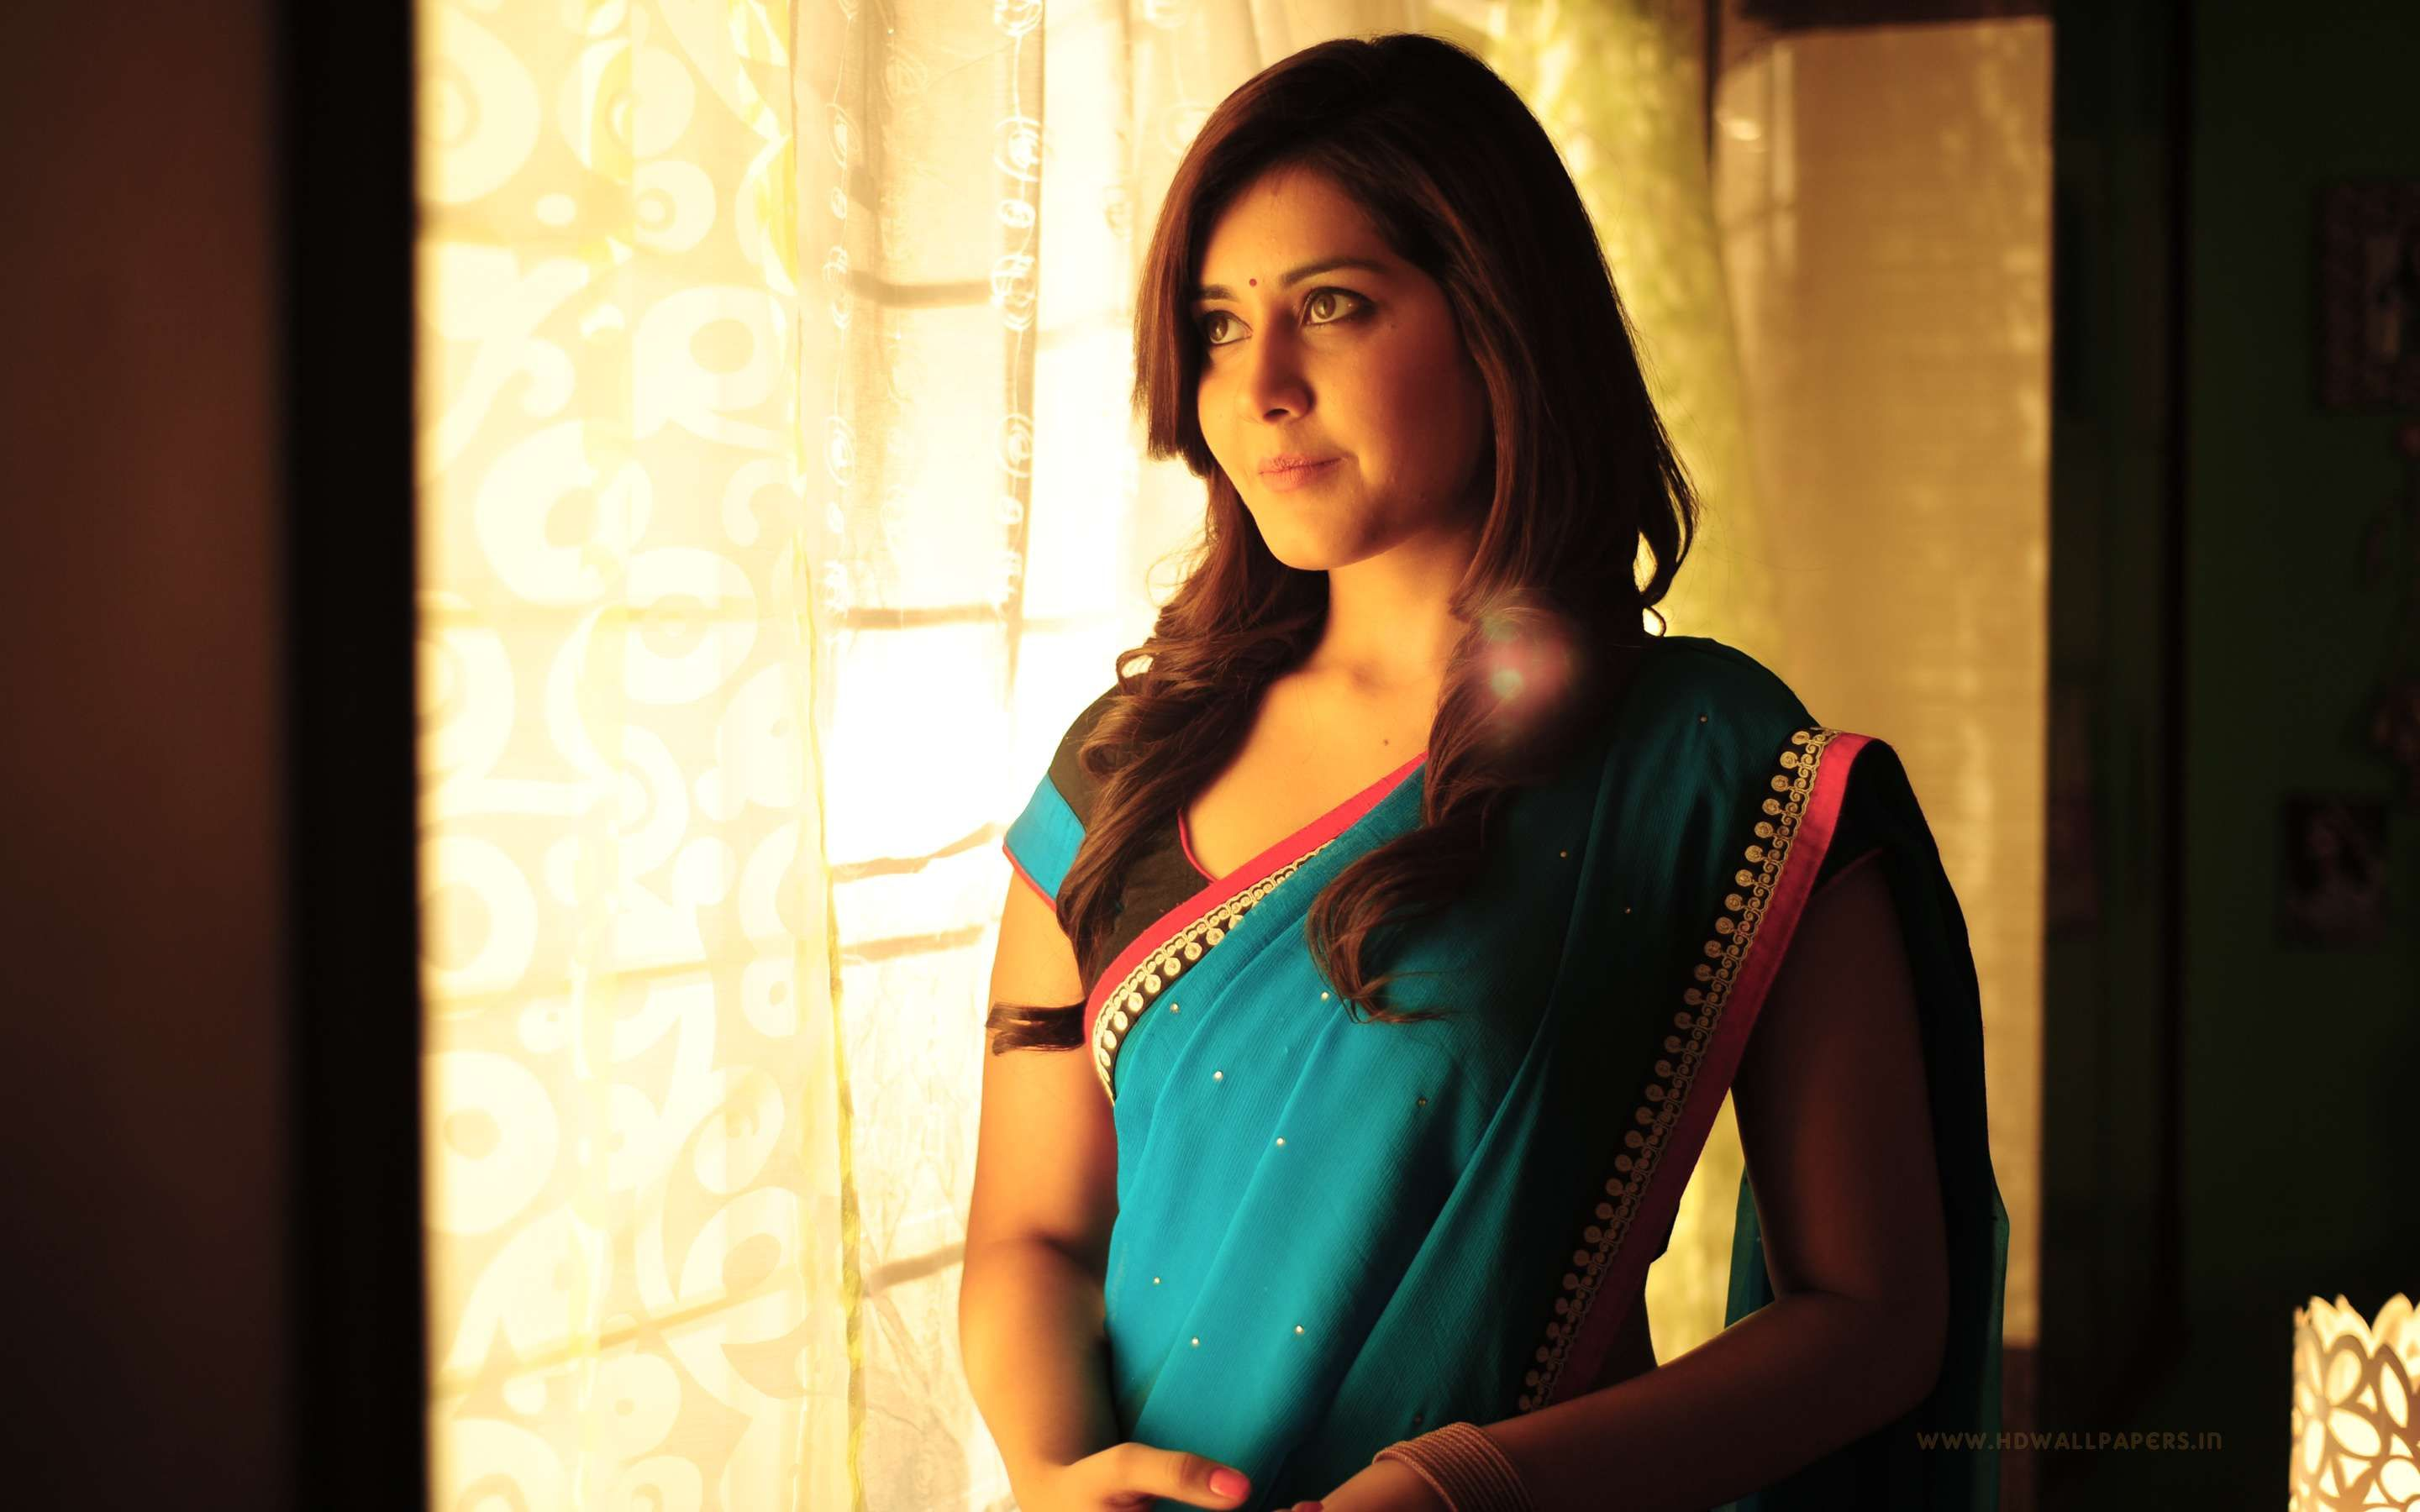 rashi khanna saree beautiful girls,romantic hd wallpapers,girl